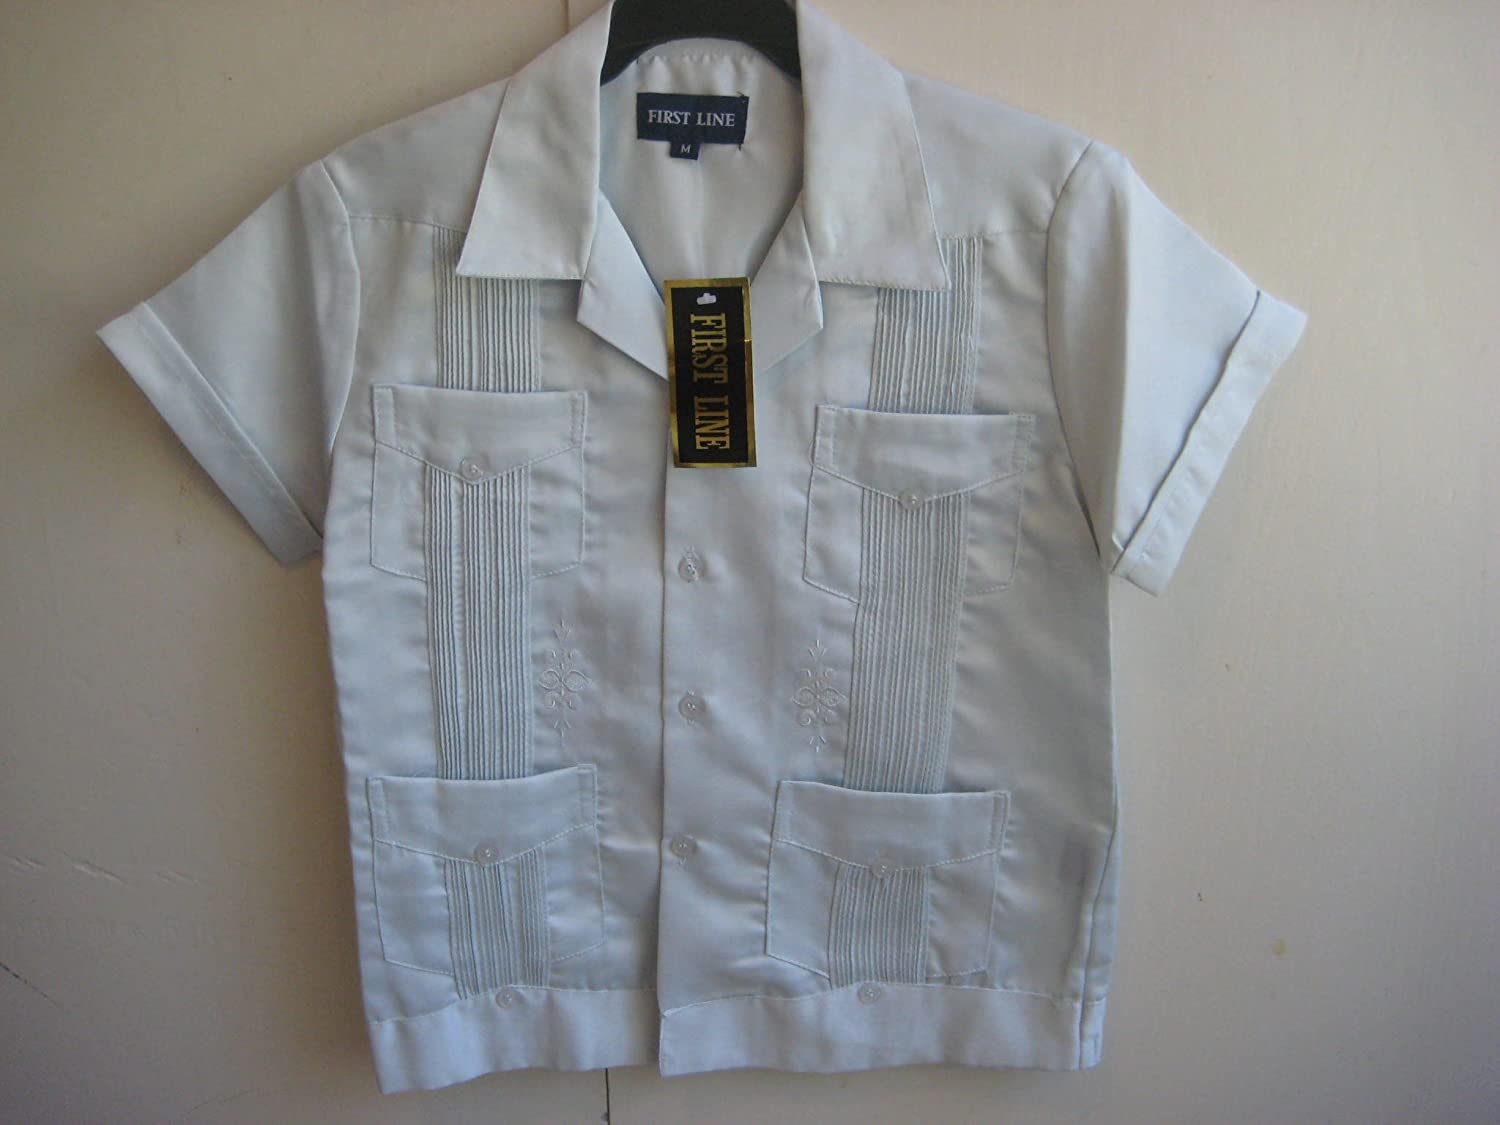 New Boy Satin Guayabera Mexican Wedding Shirt Embroidered Front & Back,Size M, Color: L. Grey